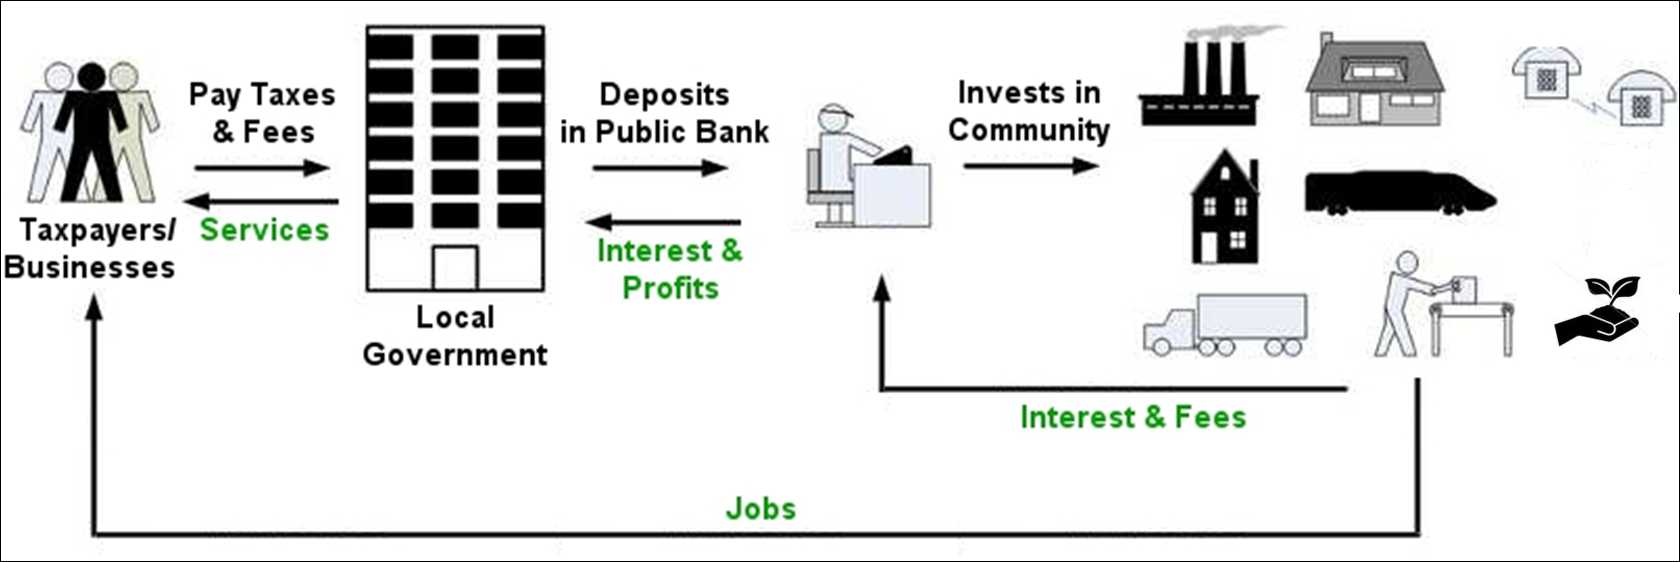 Banking with publicly owned bank